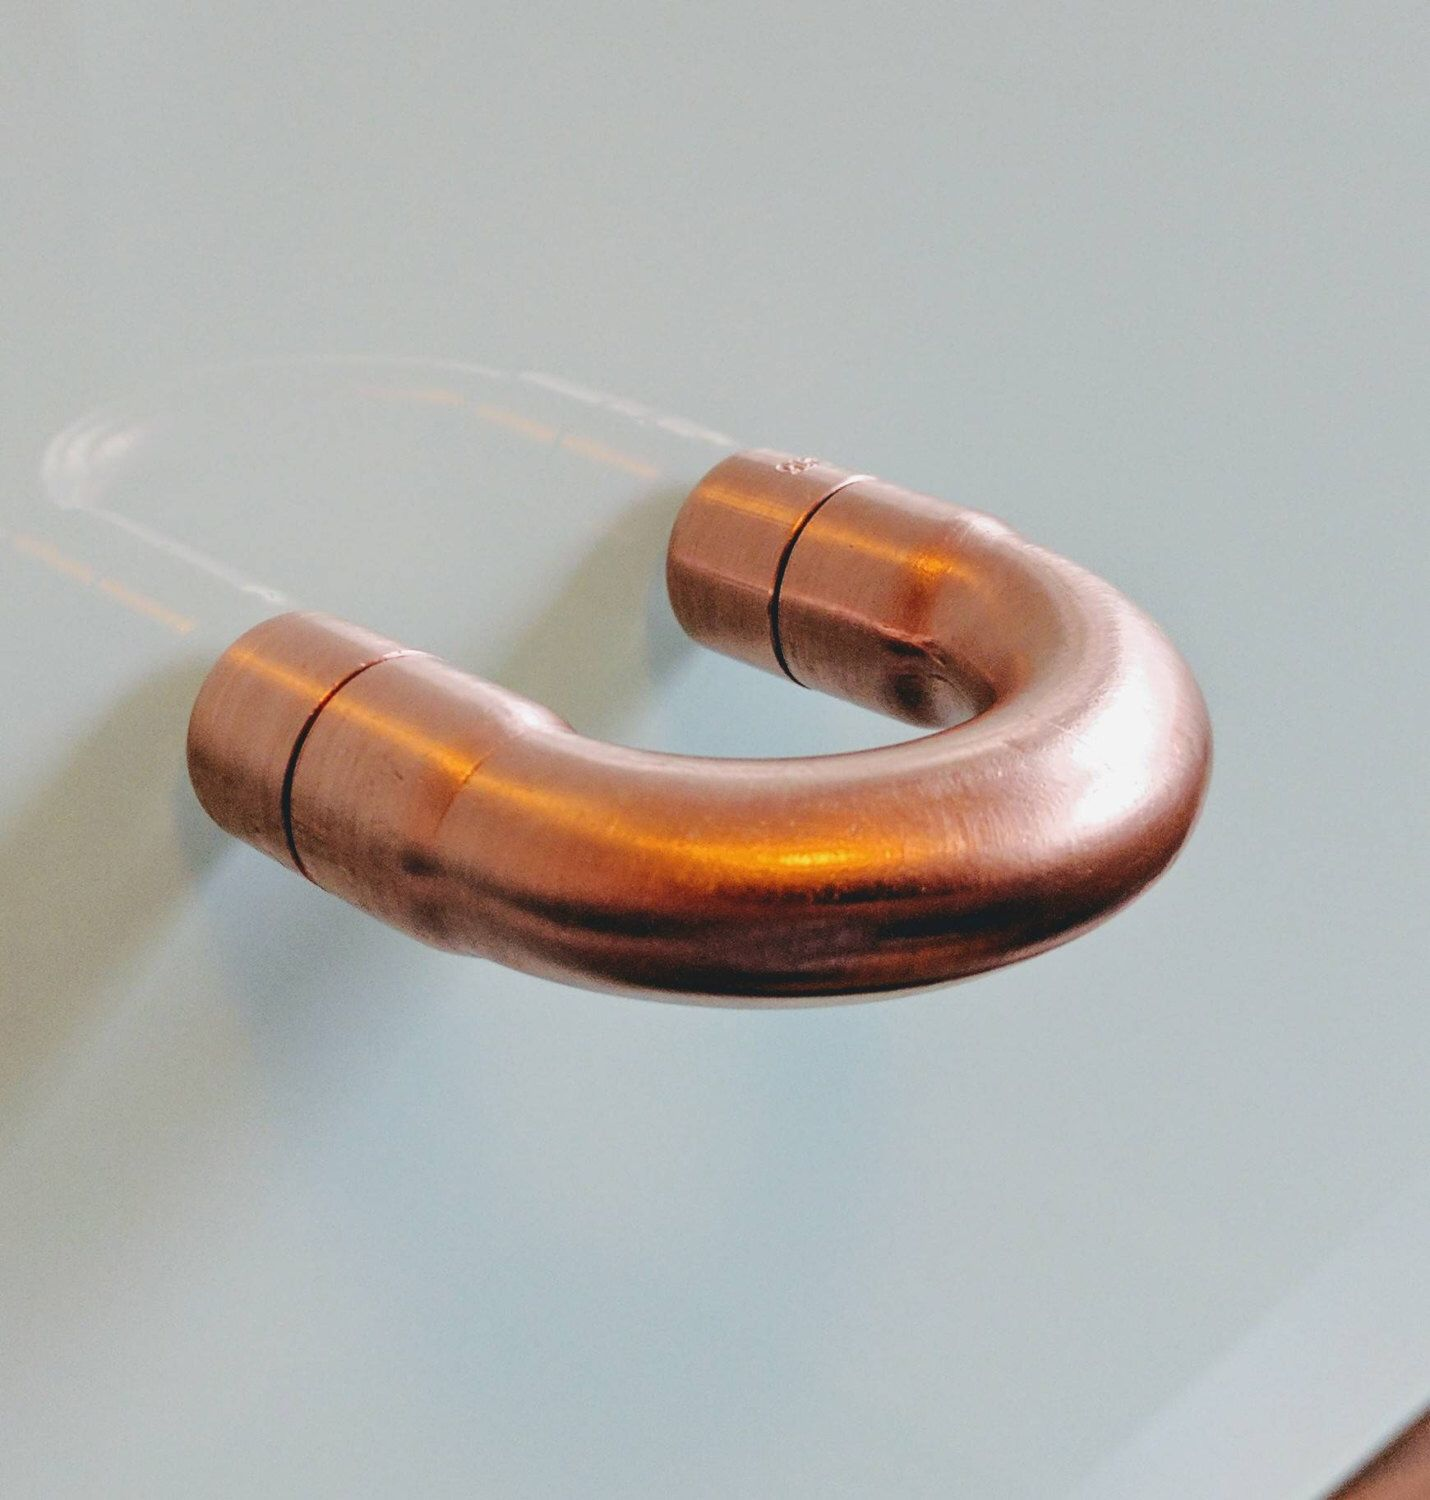 copper handle copper handles copper knobs and pulls cabinet hardware kitchen cupboard pulls cabinet pull drawer handles knobs and pulls